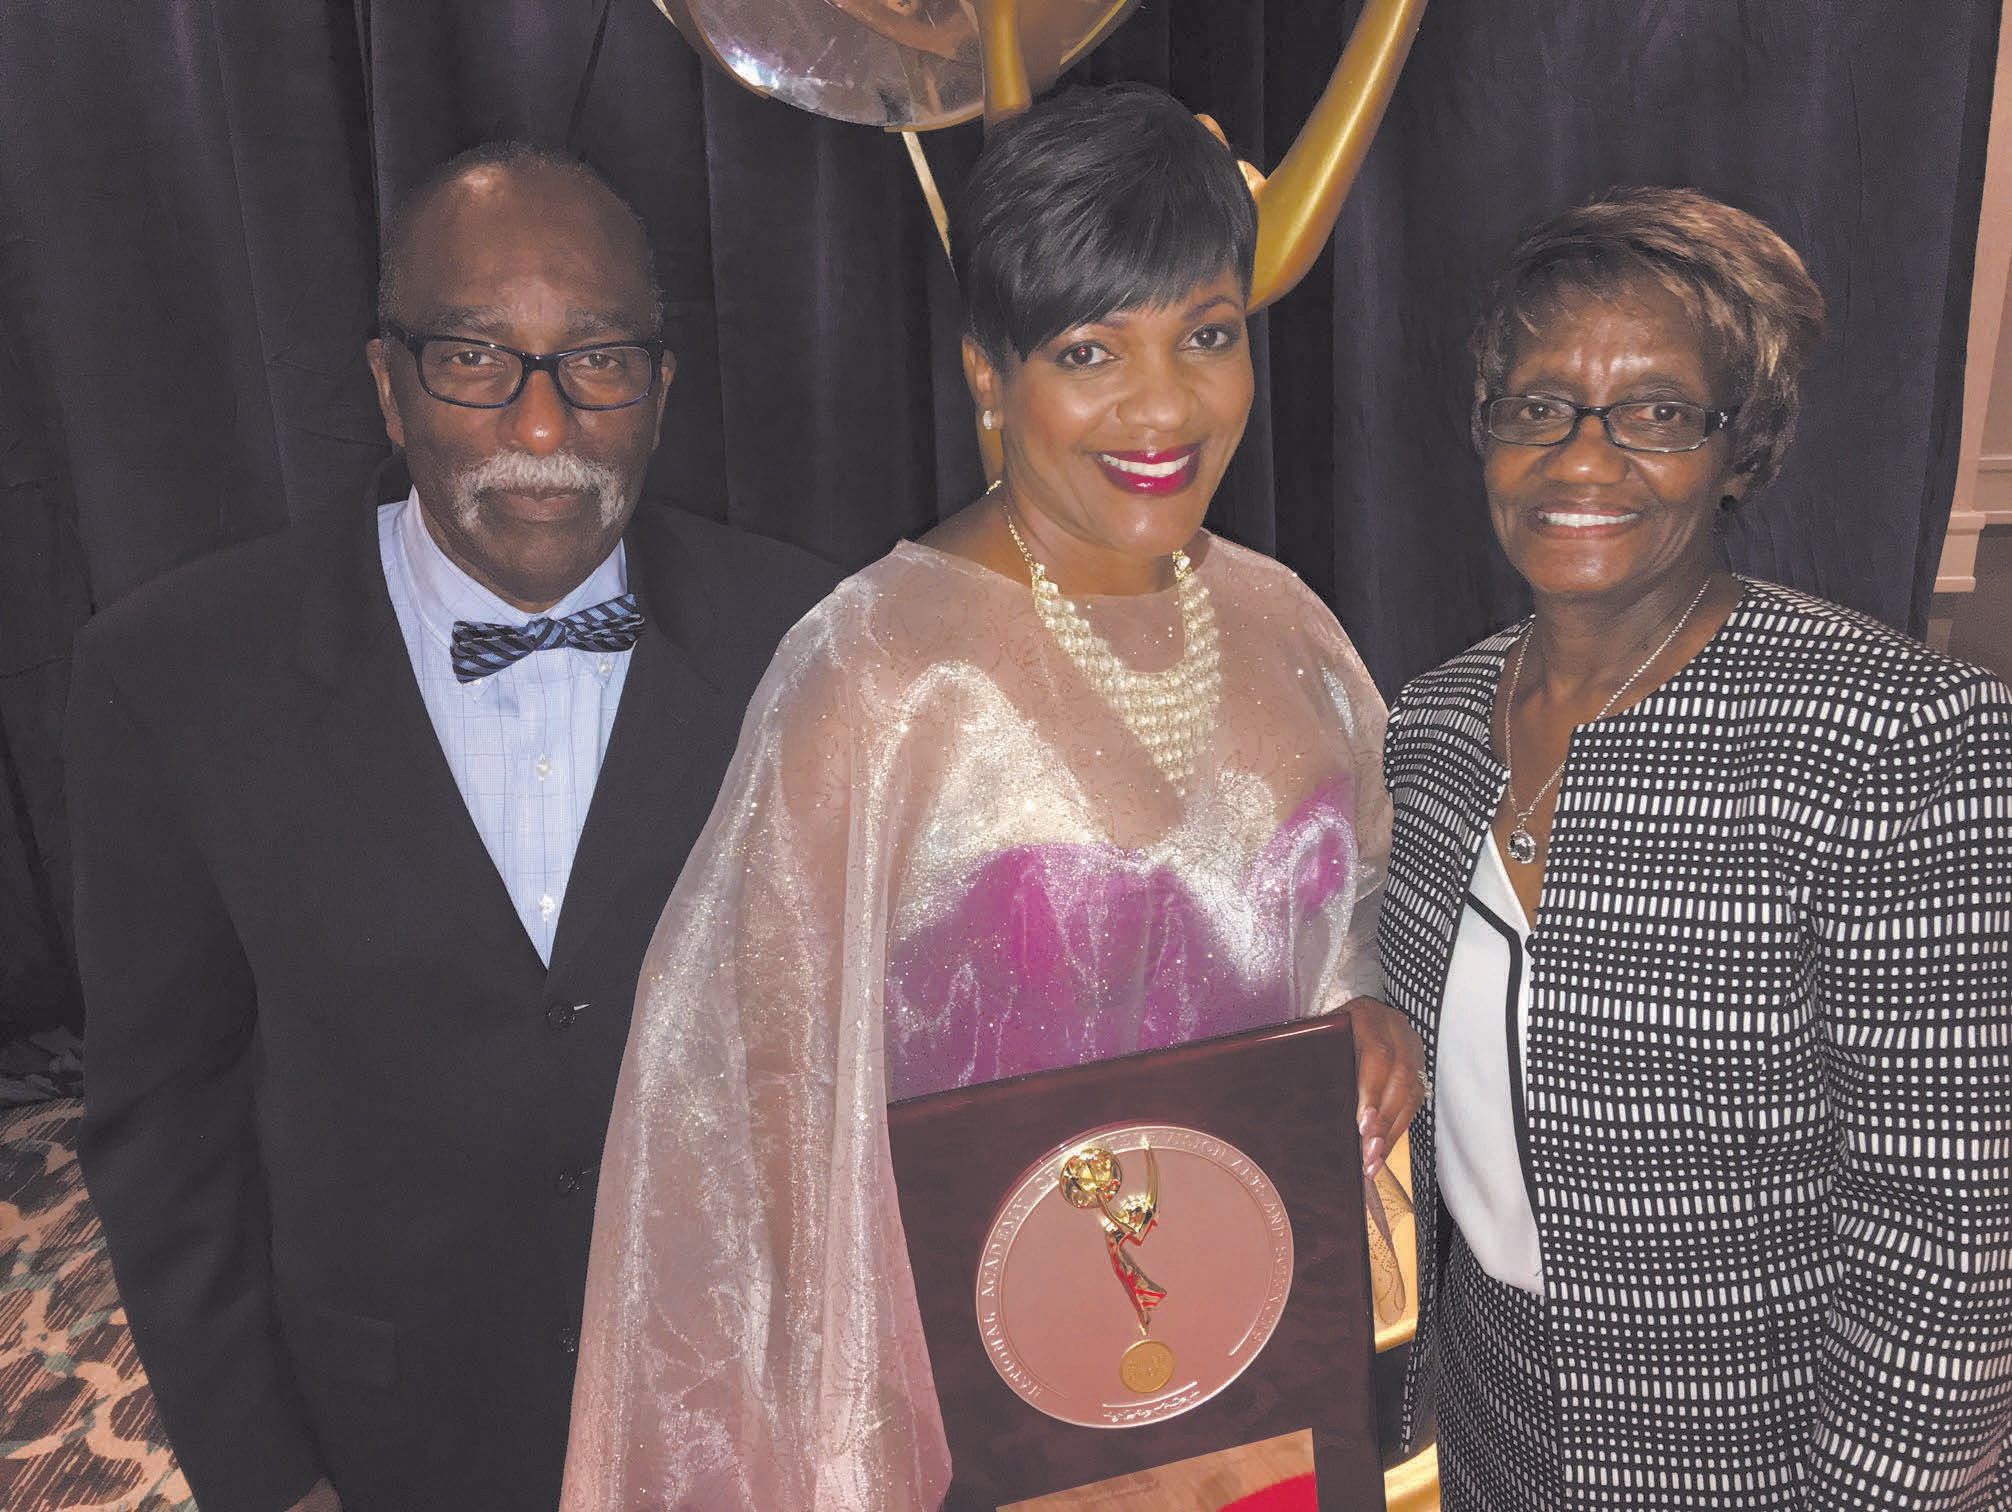 Tina Tyus-Shaw (Center) shown with father Willie Tyus and mother Dorothy Underwood